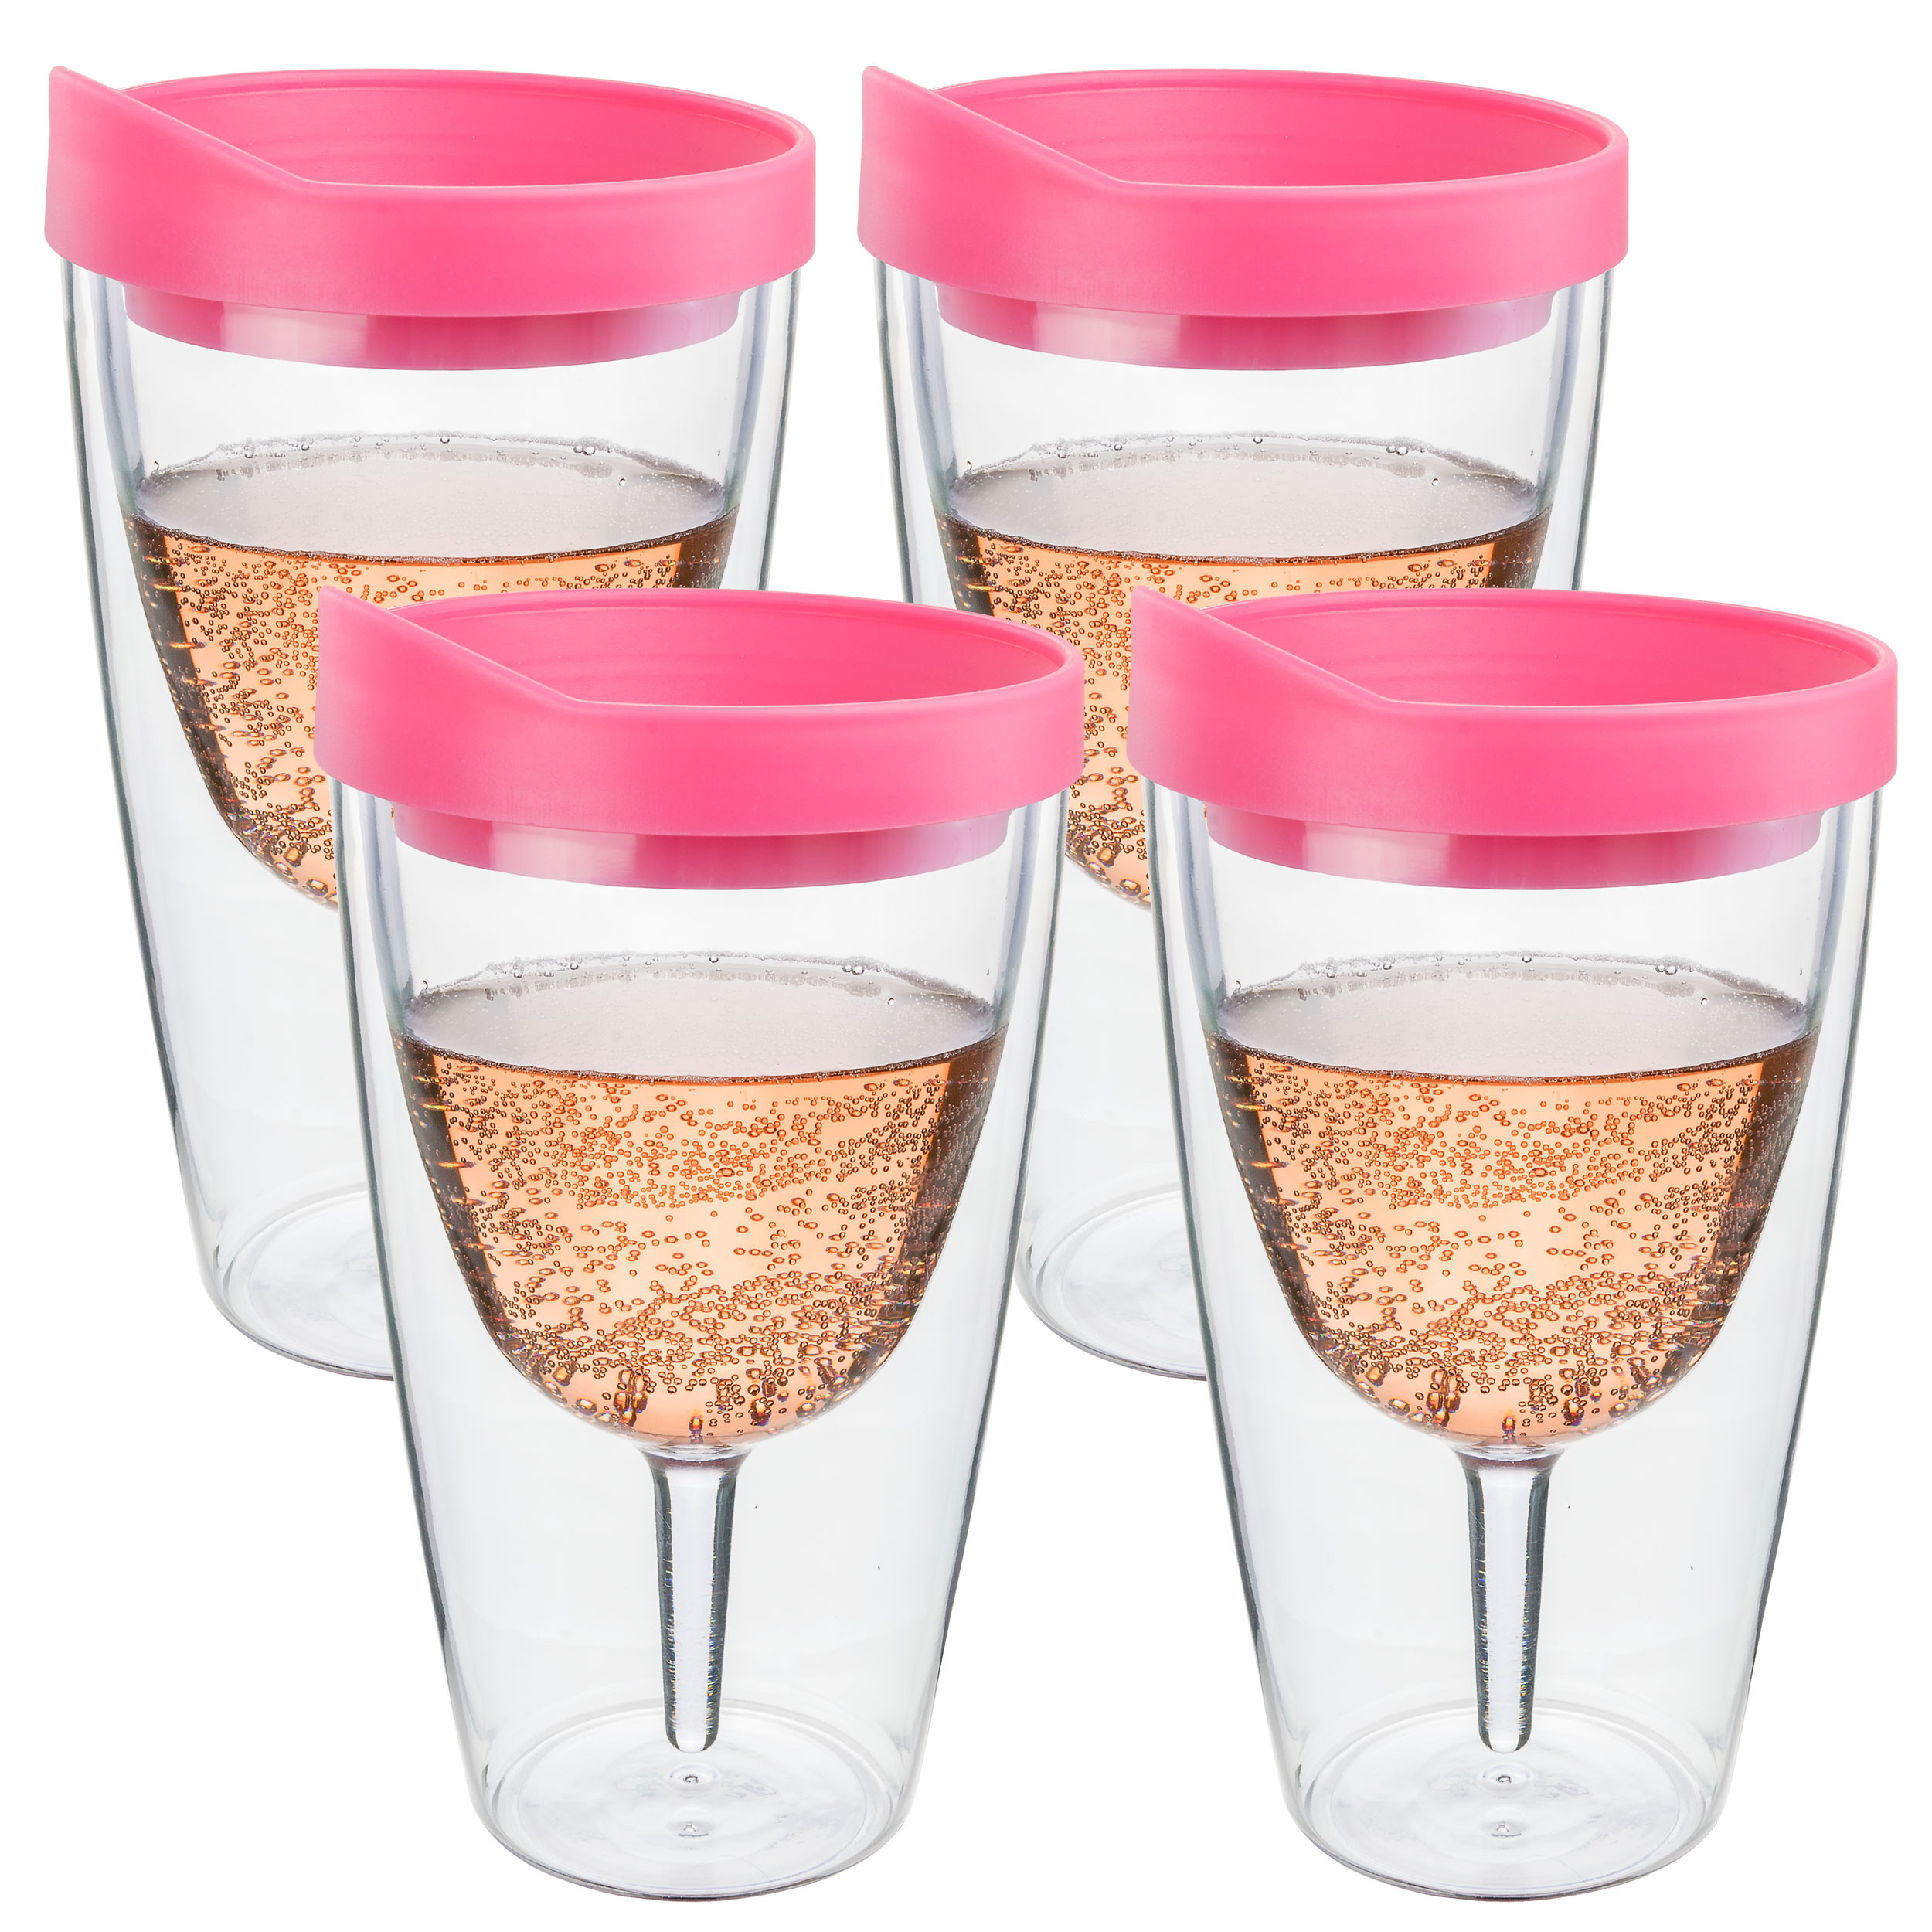 Pink Insulated Wine Tumbler - Double Wall Acrylic 4 Pack